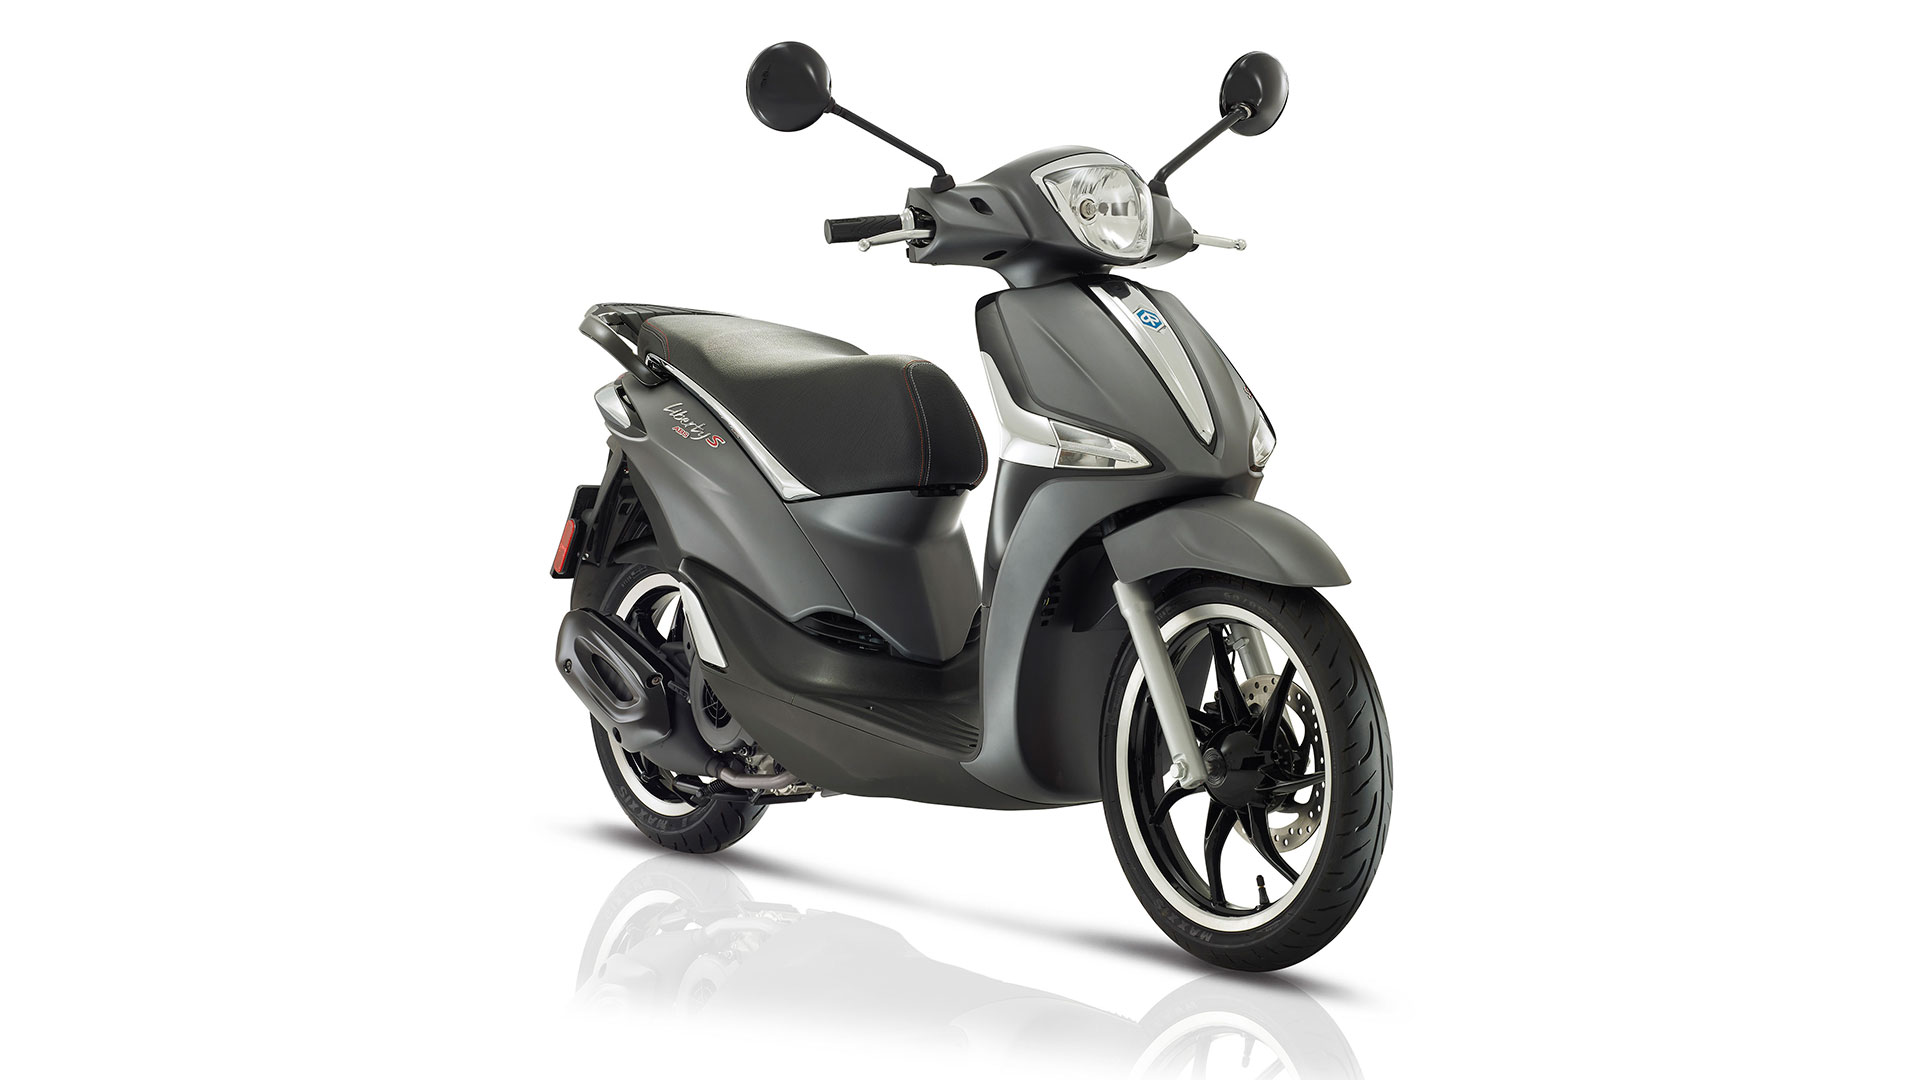 Achat Piaggio Liberty S ABS 125 cm3 neuf à Nice chez Scoot Center-1